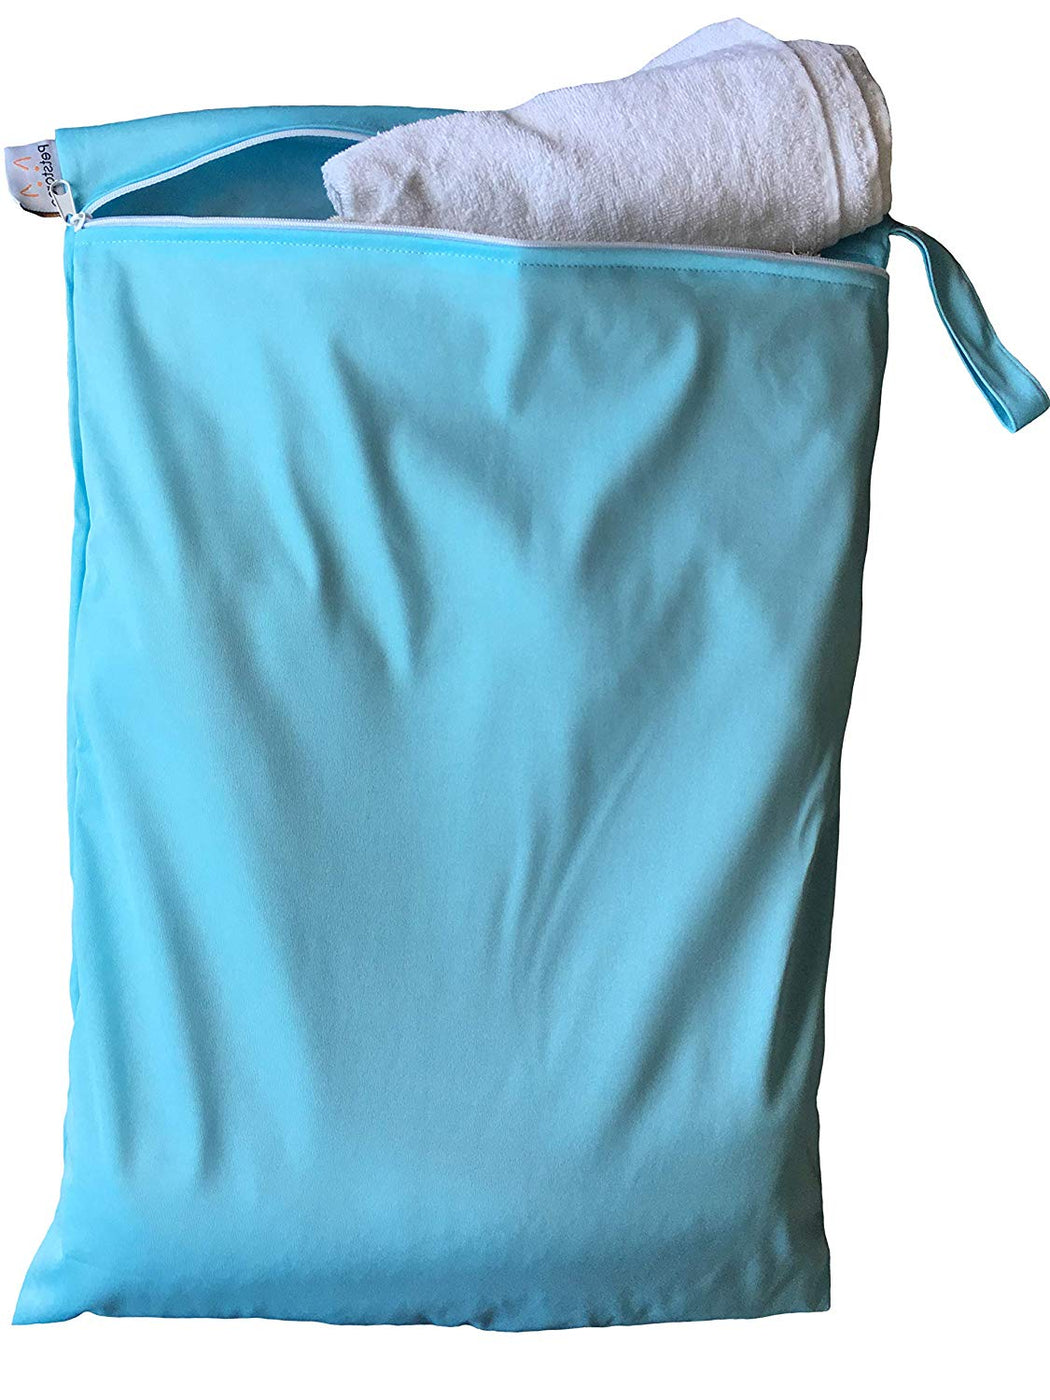 Petstoreo Pet Wash Bag For Washing Machine (Sky Blue)